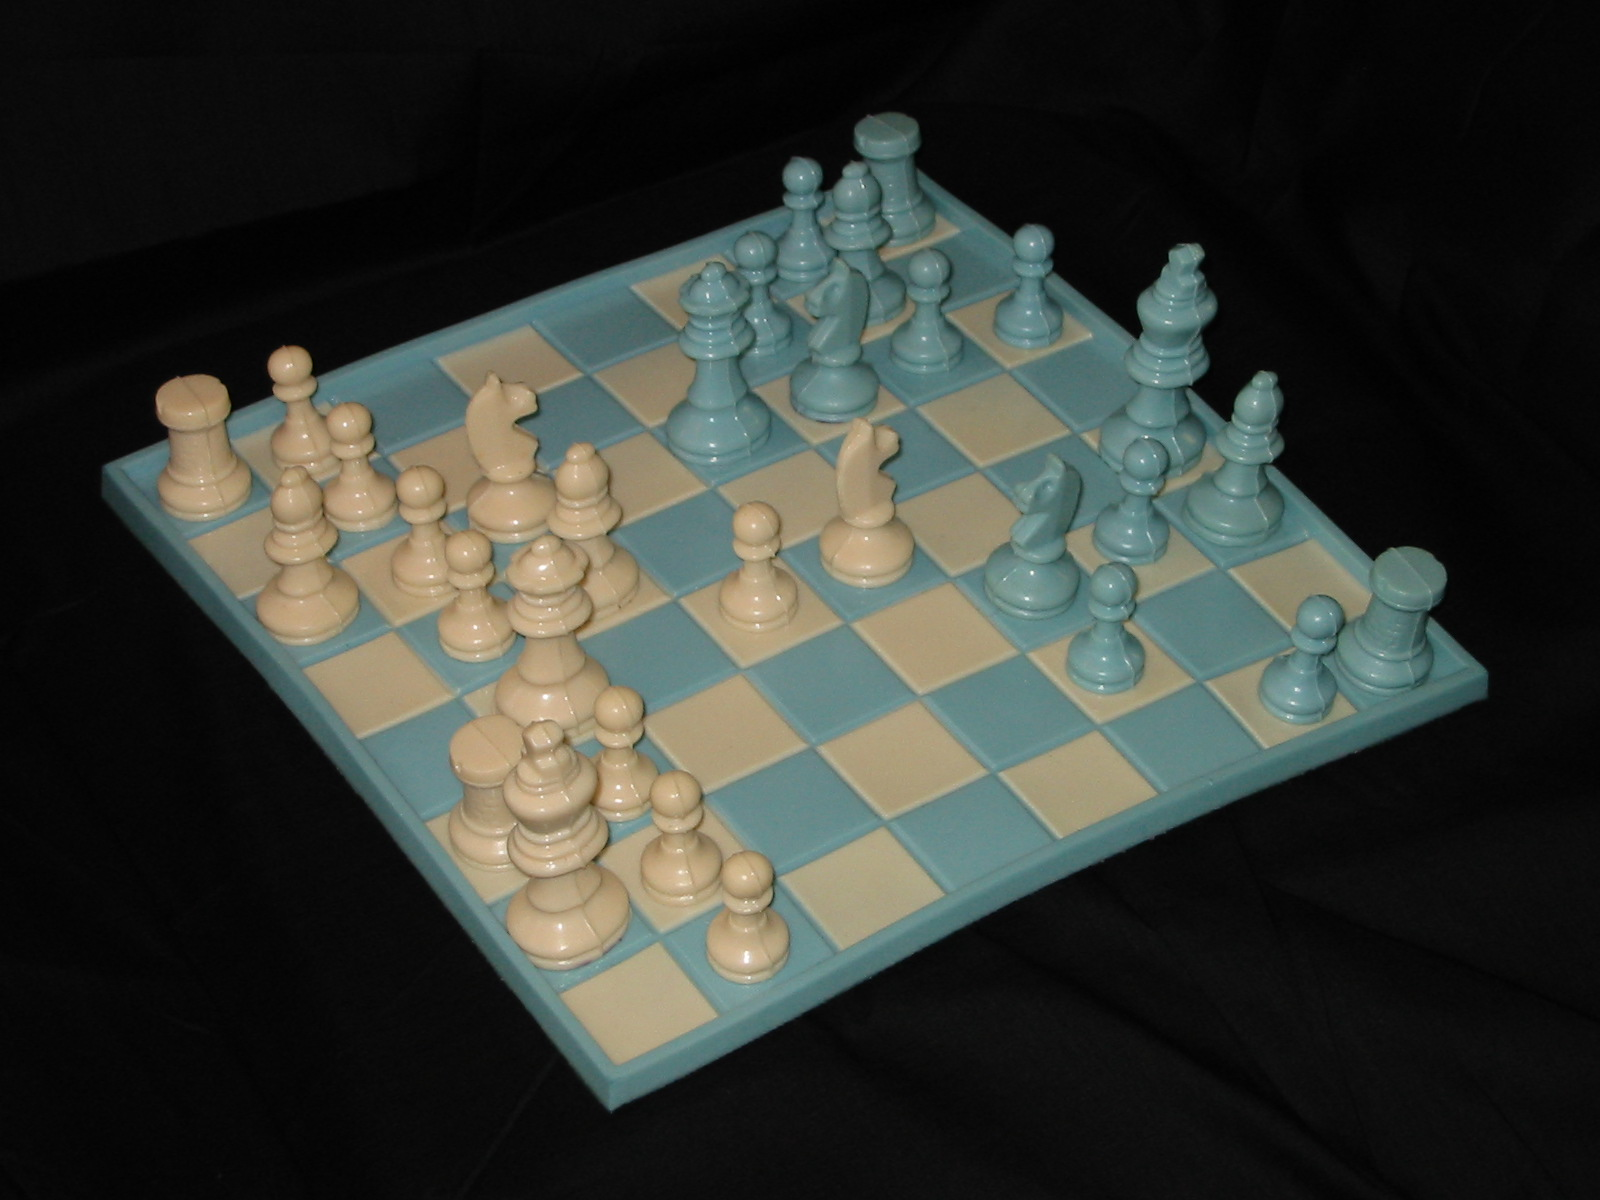 Soft Rubber Chess Set